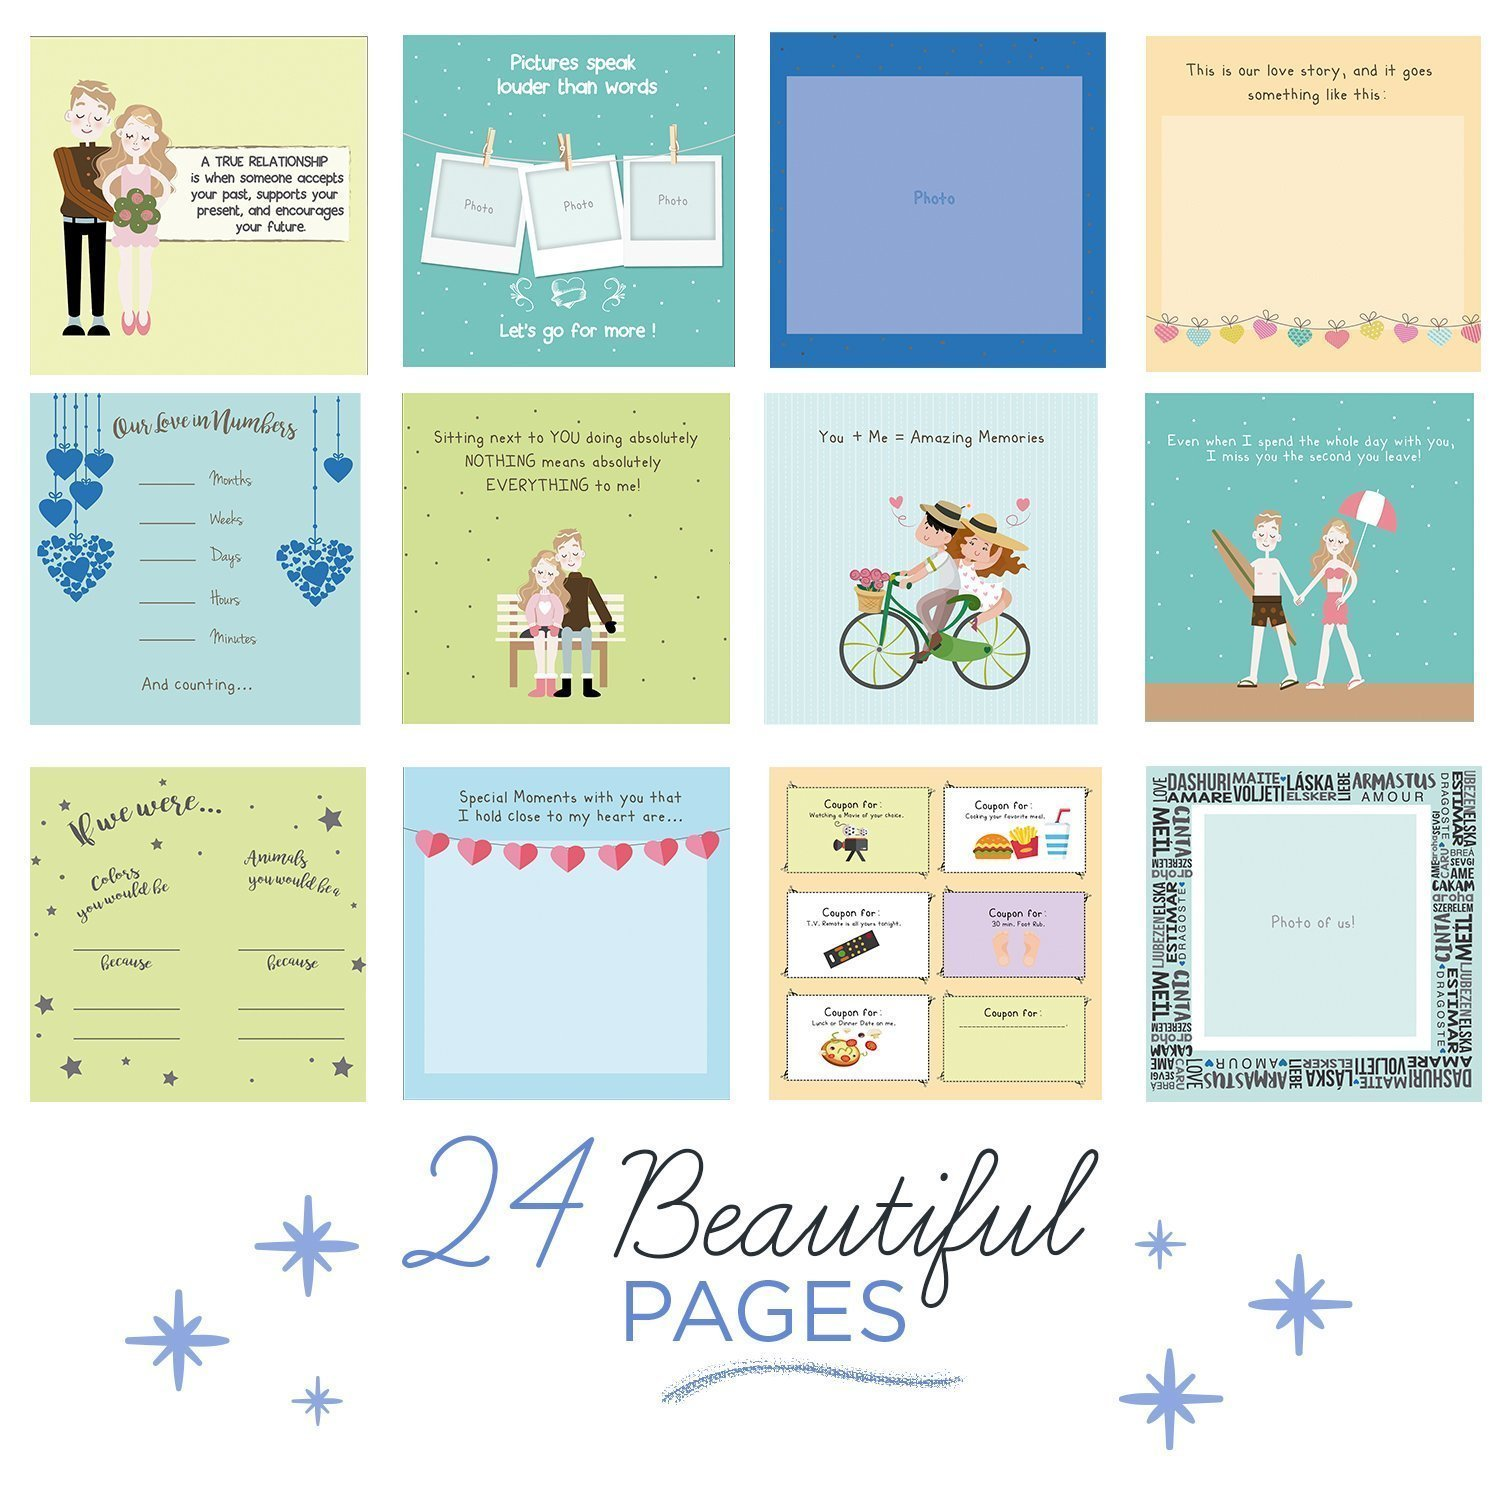 Best Boyfriend Ever Memory Book - The Best Romantic Gift Ideas For Your Boyfriend! Your BF Will Love This Cute Present For His Birthday, Valentine's Day, Christmas Or A Special Date! by Unconditional Rosie (Image #5)